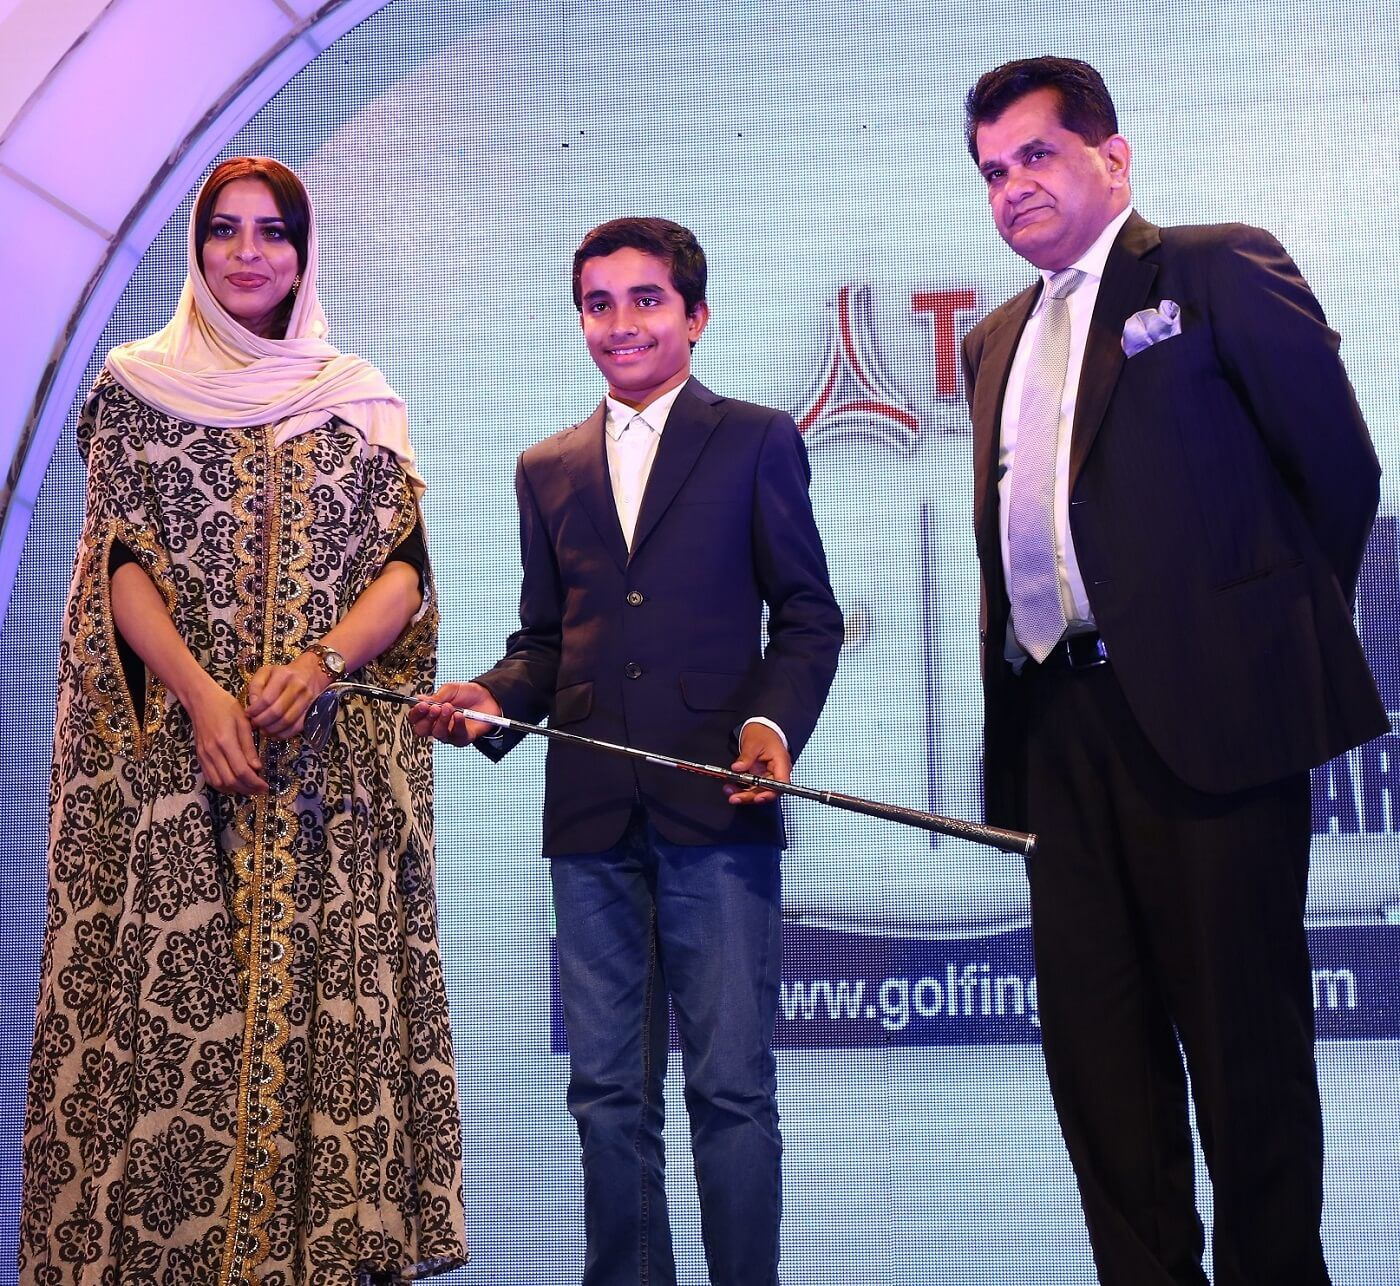 Jumeirah Golf Estates presents the Indian Golf Awards, Young Achievers Award.